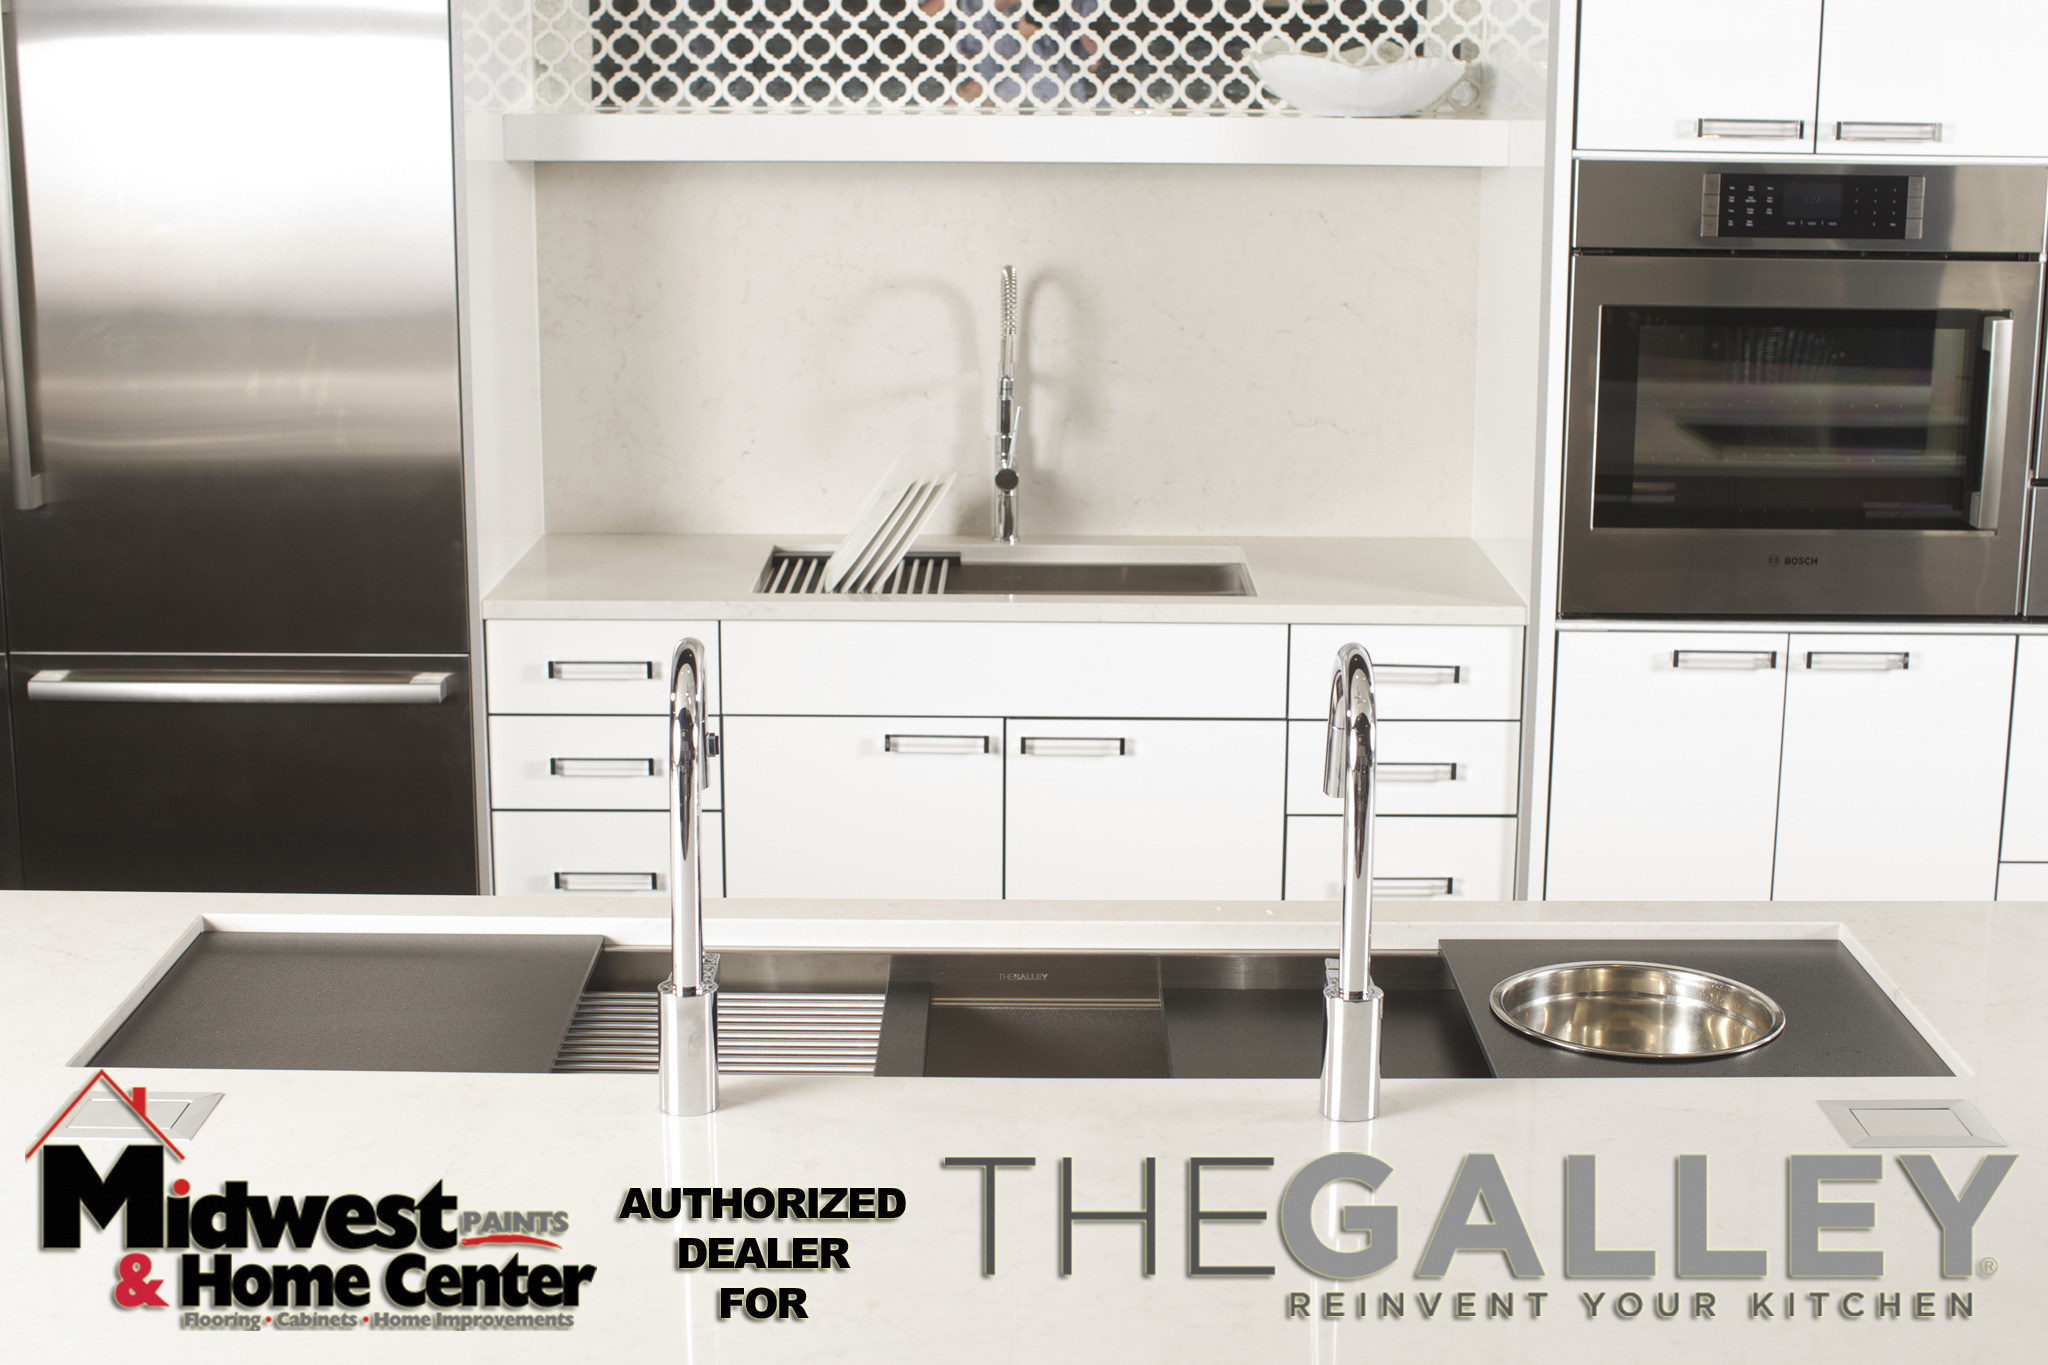 9/25/14 5:24:11 PM -- Kitchen interiors of The Galley sink at Metro Appliance for Kitchen Ideas/The Galley  Photo by Shane Bevel